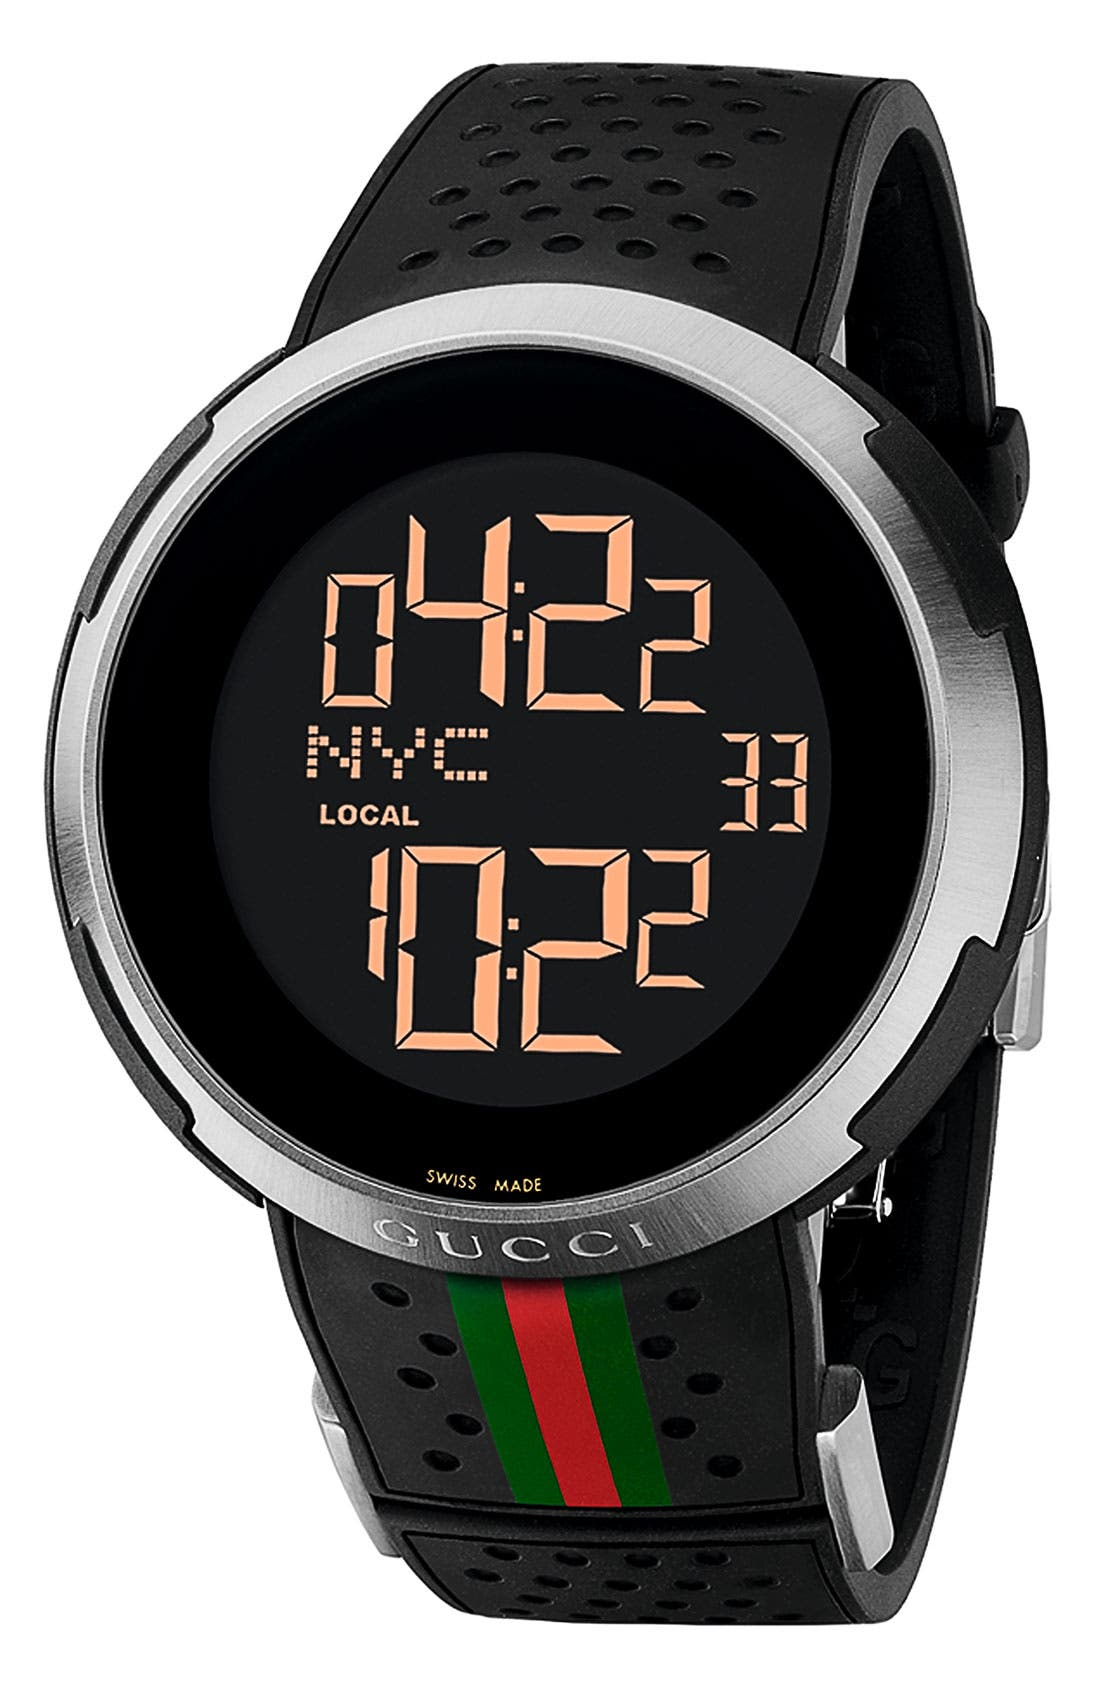 Alternate Image 1 Selected - Gucci 'I Gucci' Rubber Strap Watch, 49mm